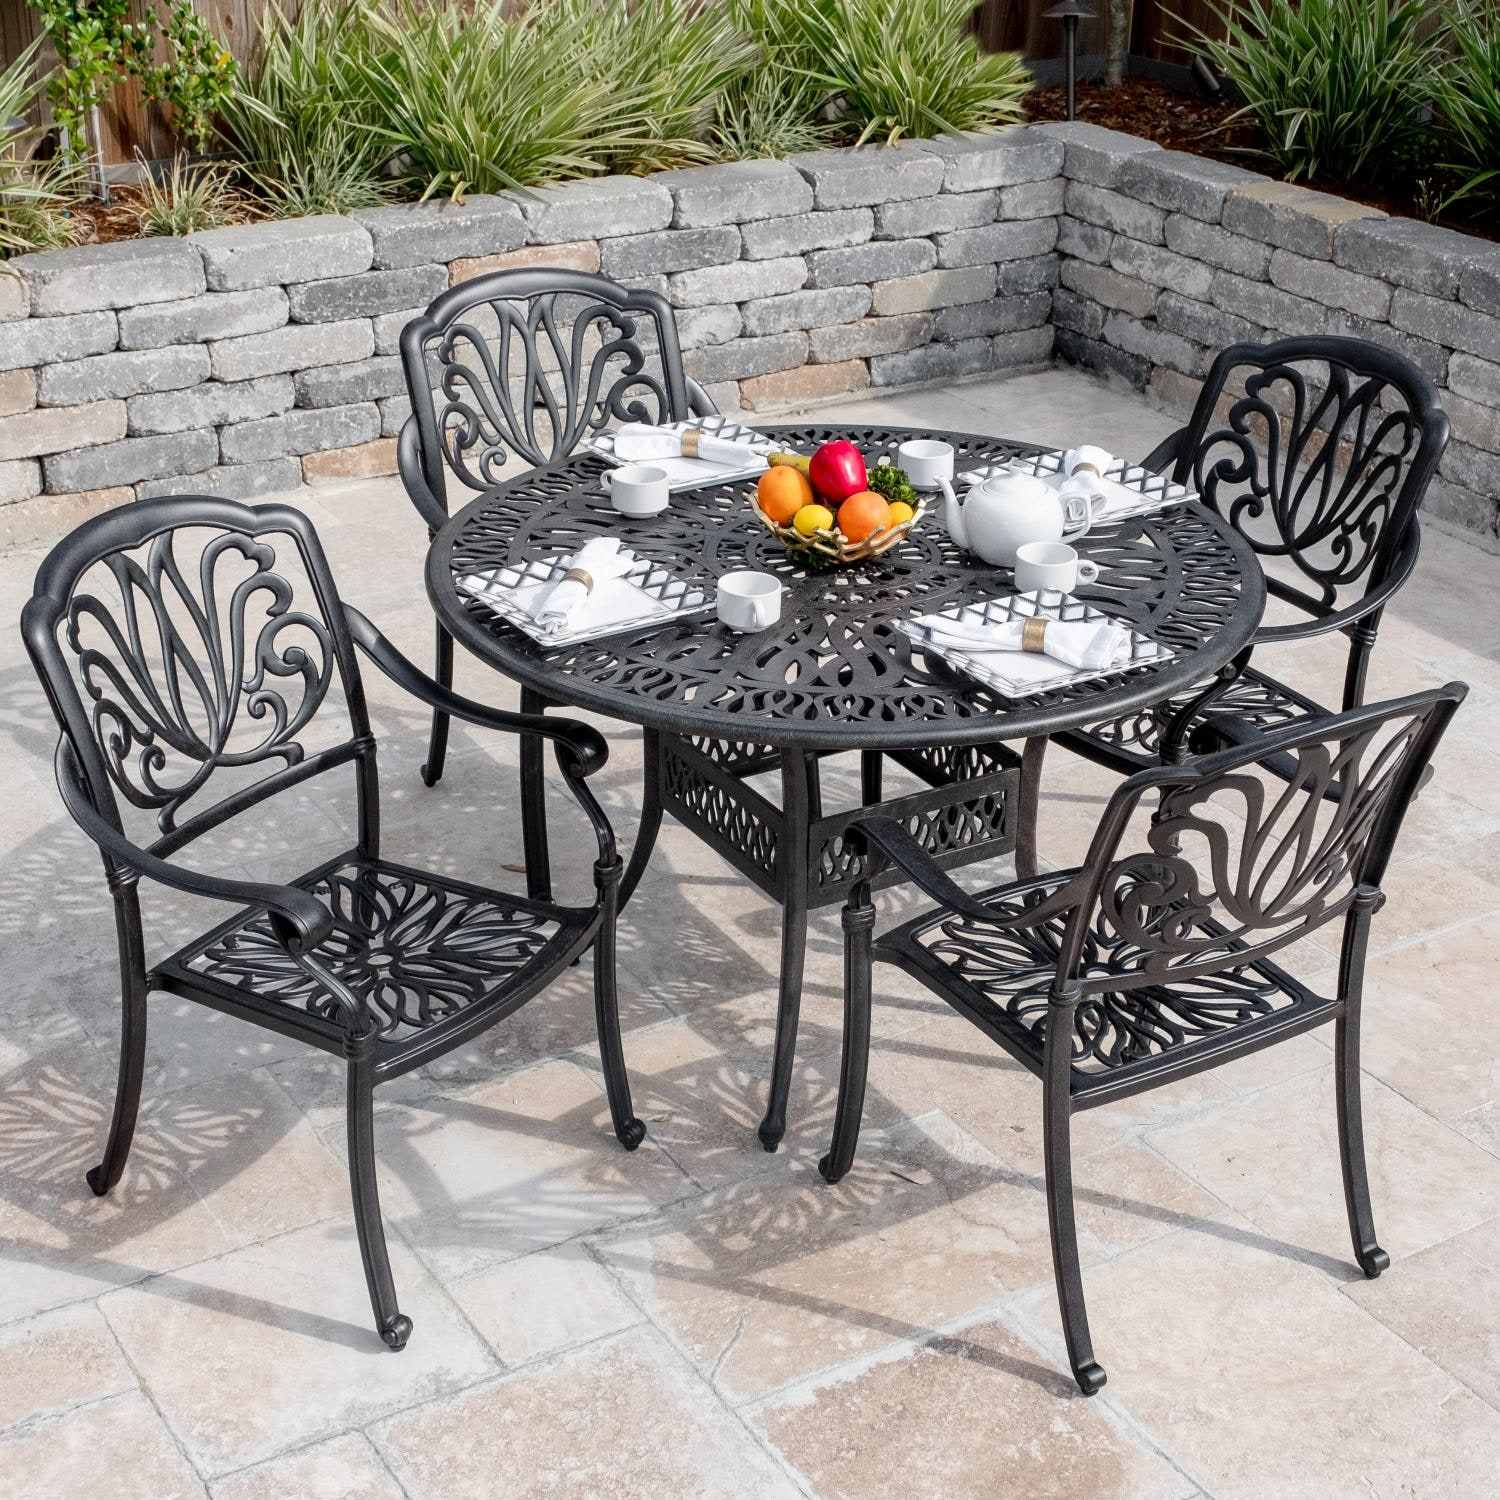 Outdoor Dining Set Round Table.Roxbury 5 Piece Cast Aluminum Patio Dining Set W 48 Inch Round Table By Darlee